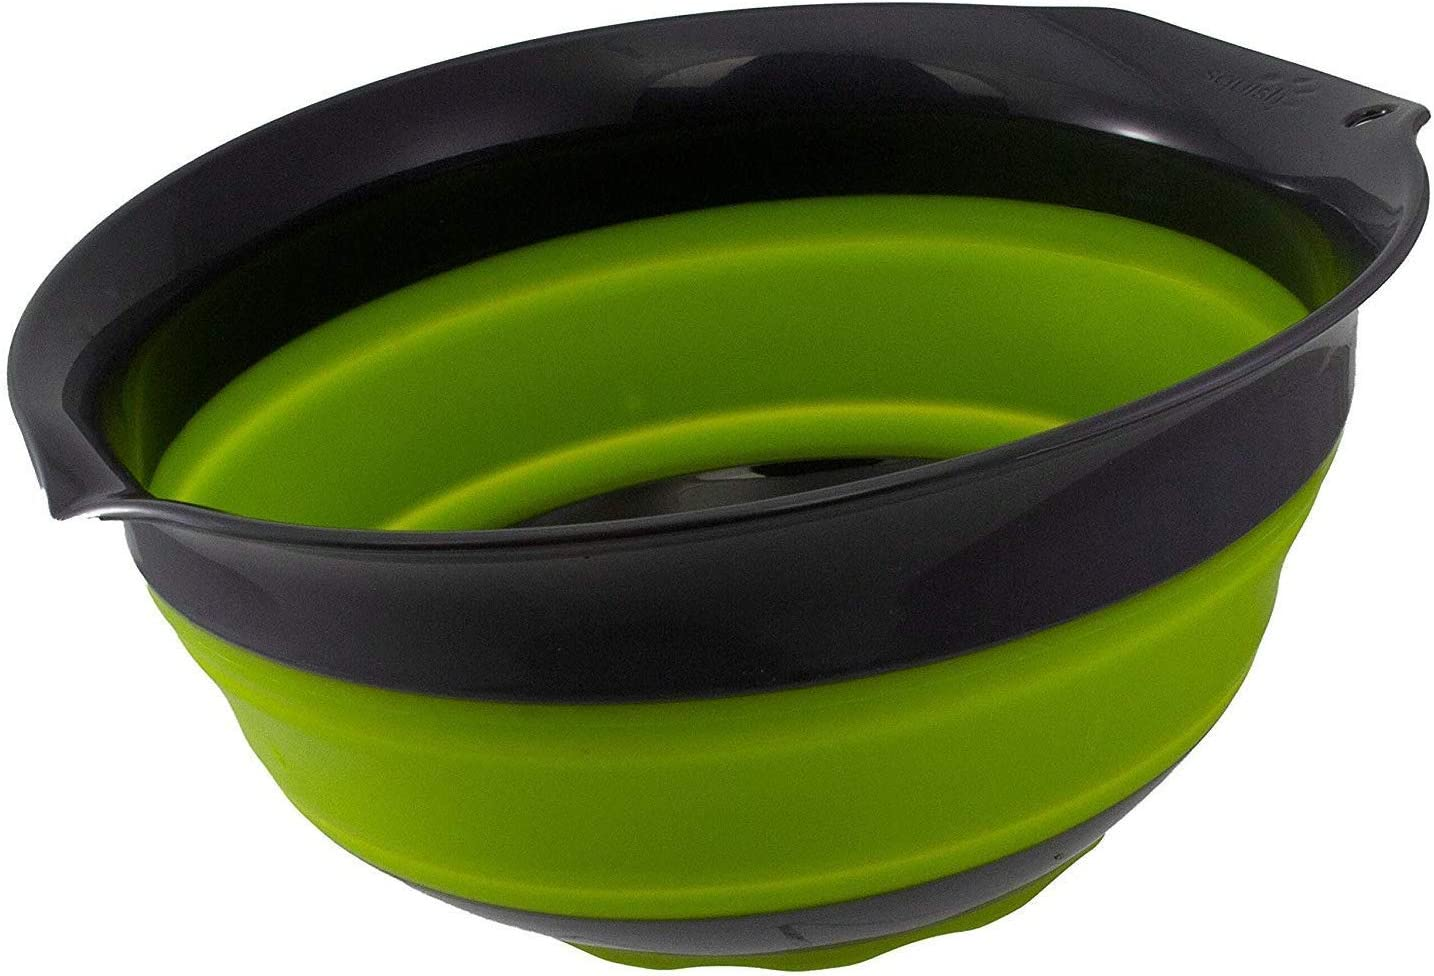 Squish 5 Quart Collapsible Mixing Bowl - Green & Gray